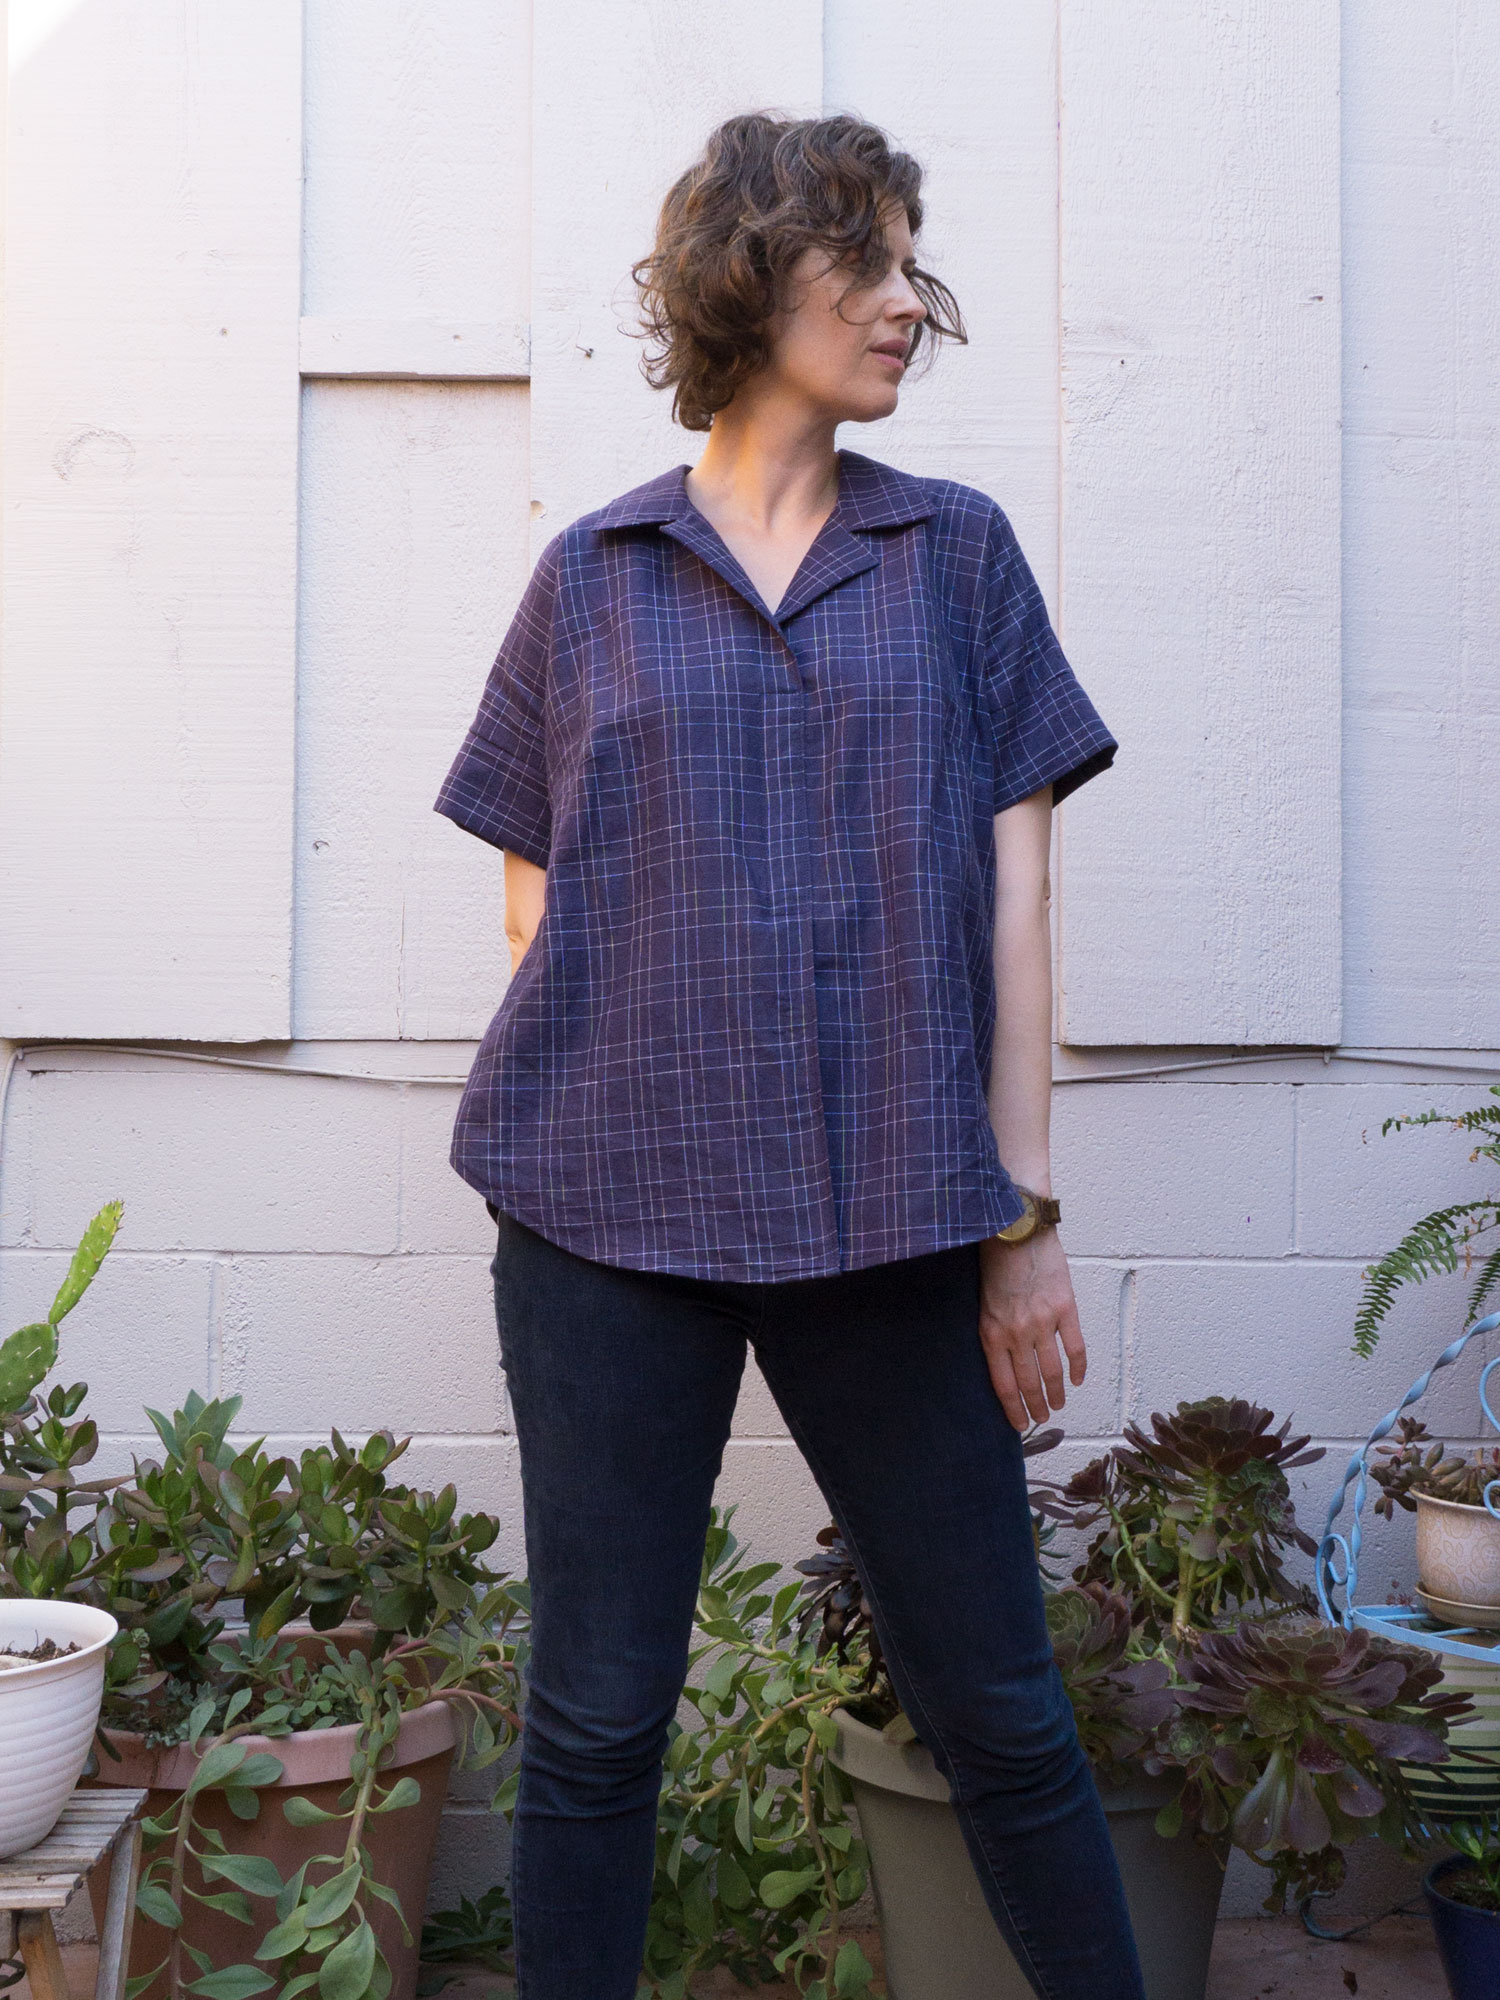 DIY Easy Collared Shirt –Review of the Willamette Shirt by Hey June Patterns | Sew DIY